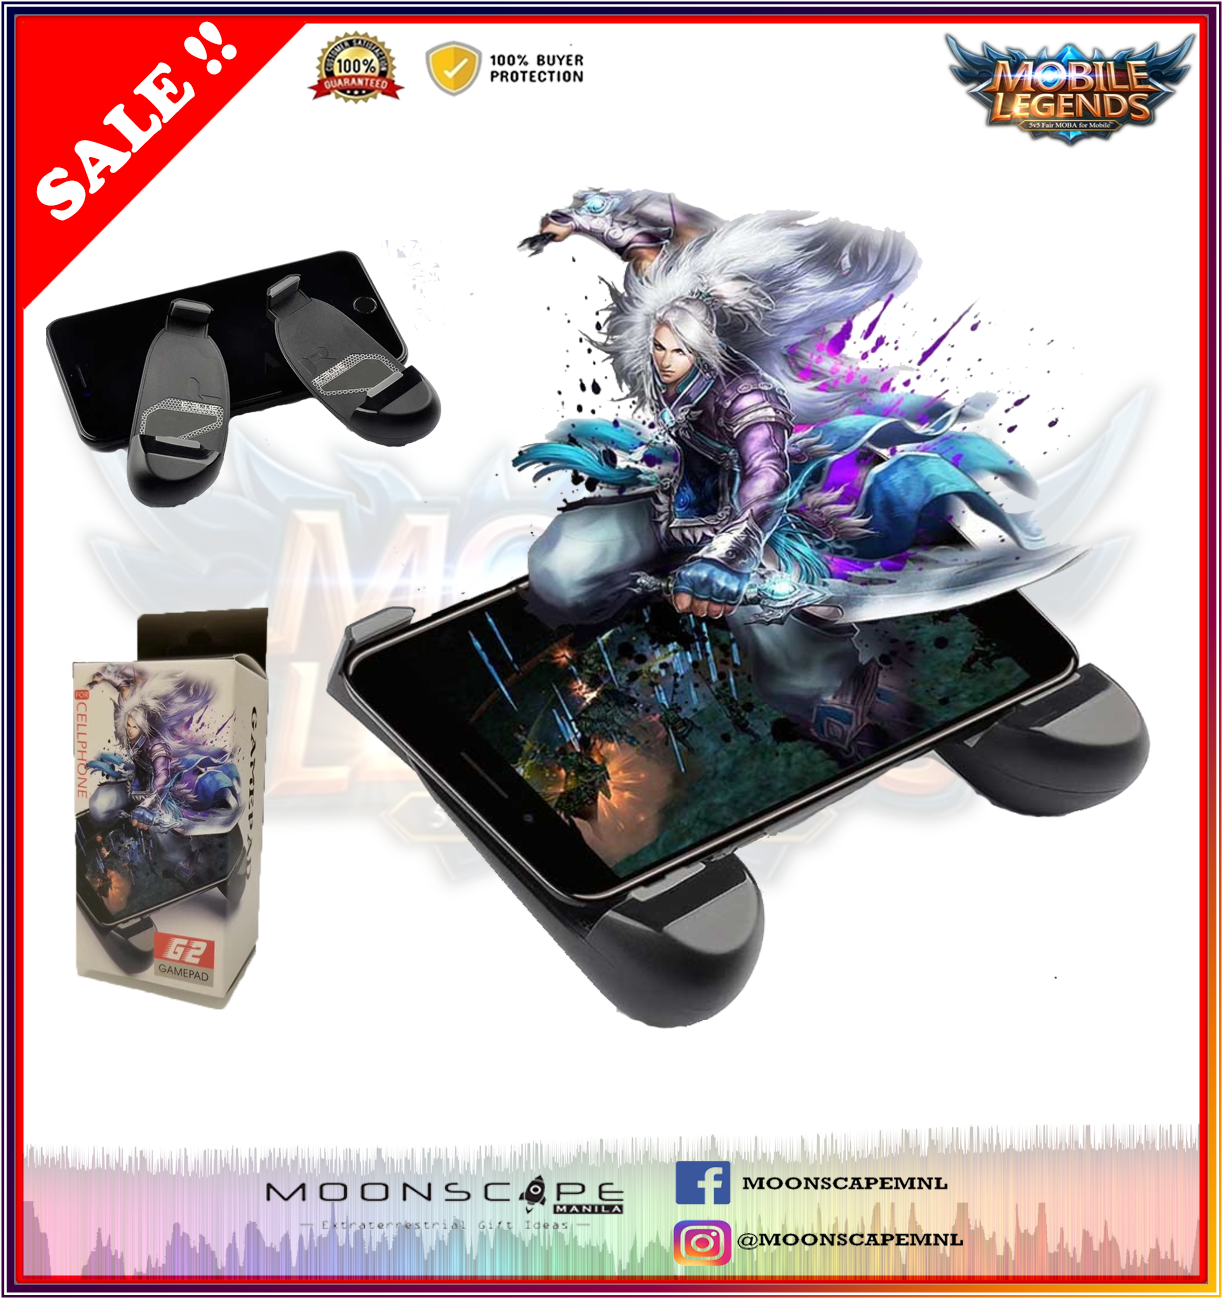 Universal G2 Portable game Grip pad 3 in 1 Gamepad Joystick Controller Game  Controller Game Handle Mobile Phone Holder Game pad (Mobile Legends / AOV)